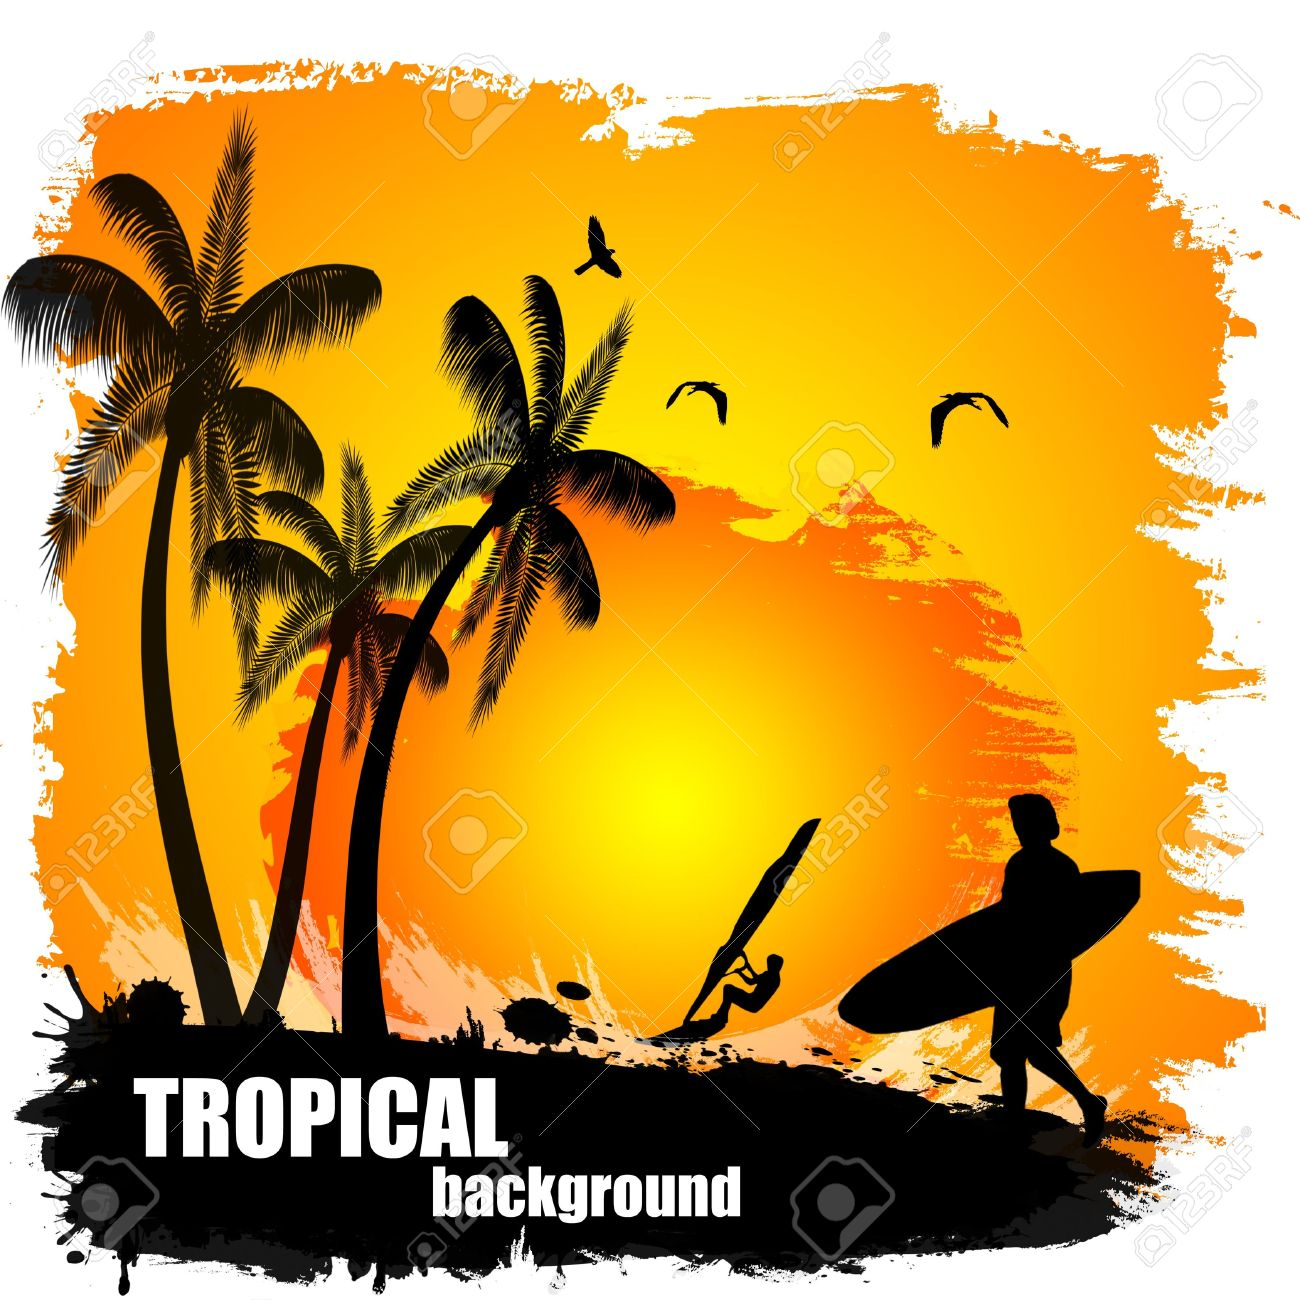 Tramonto tropicale